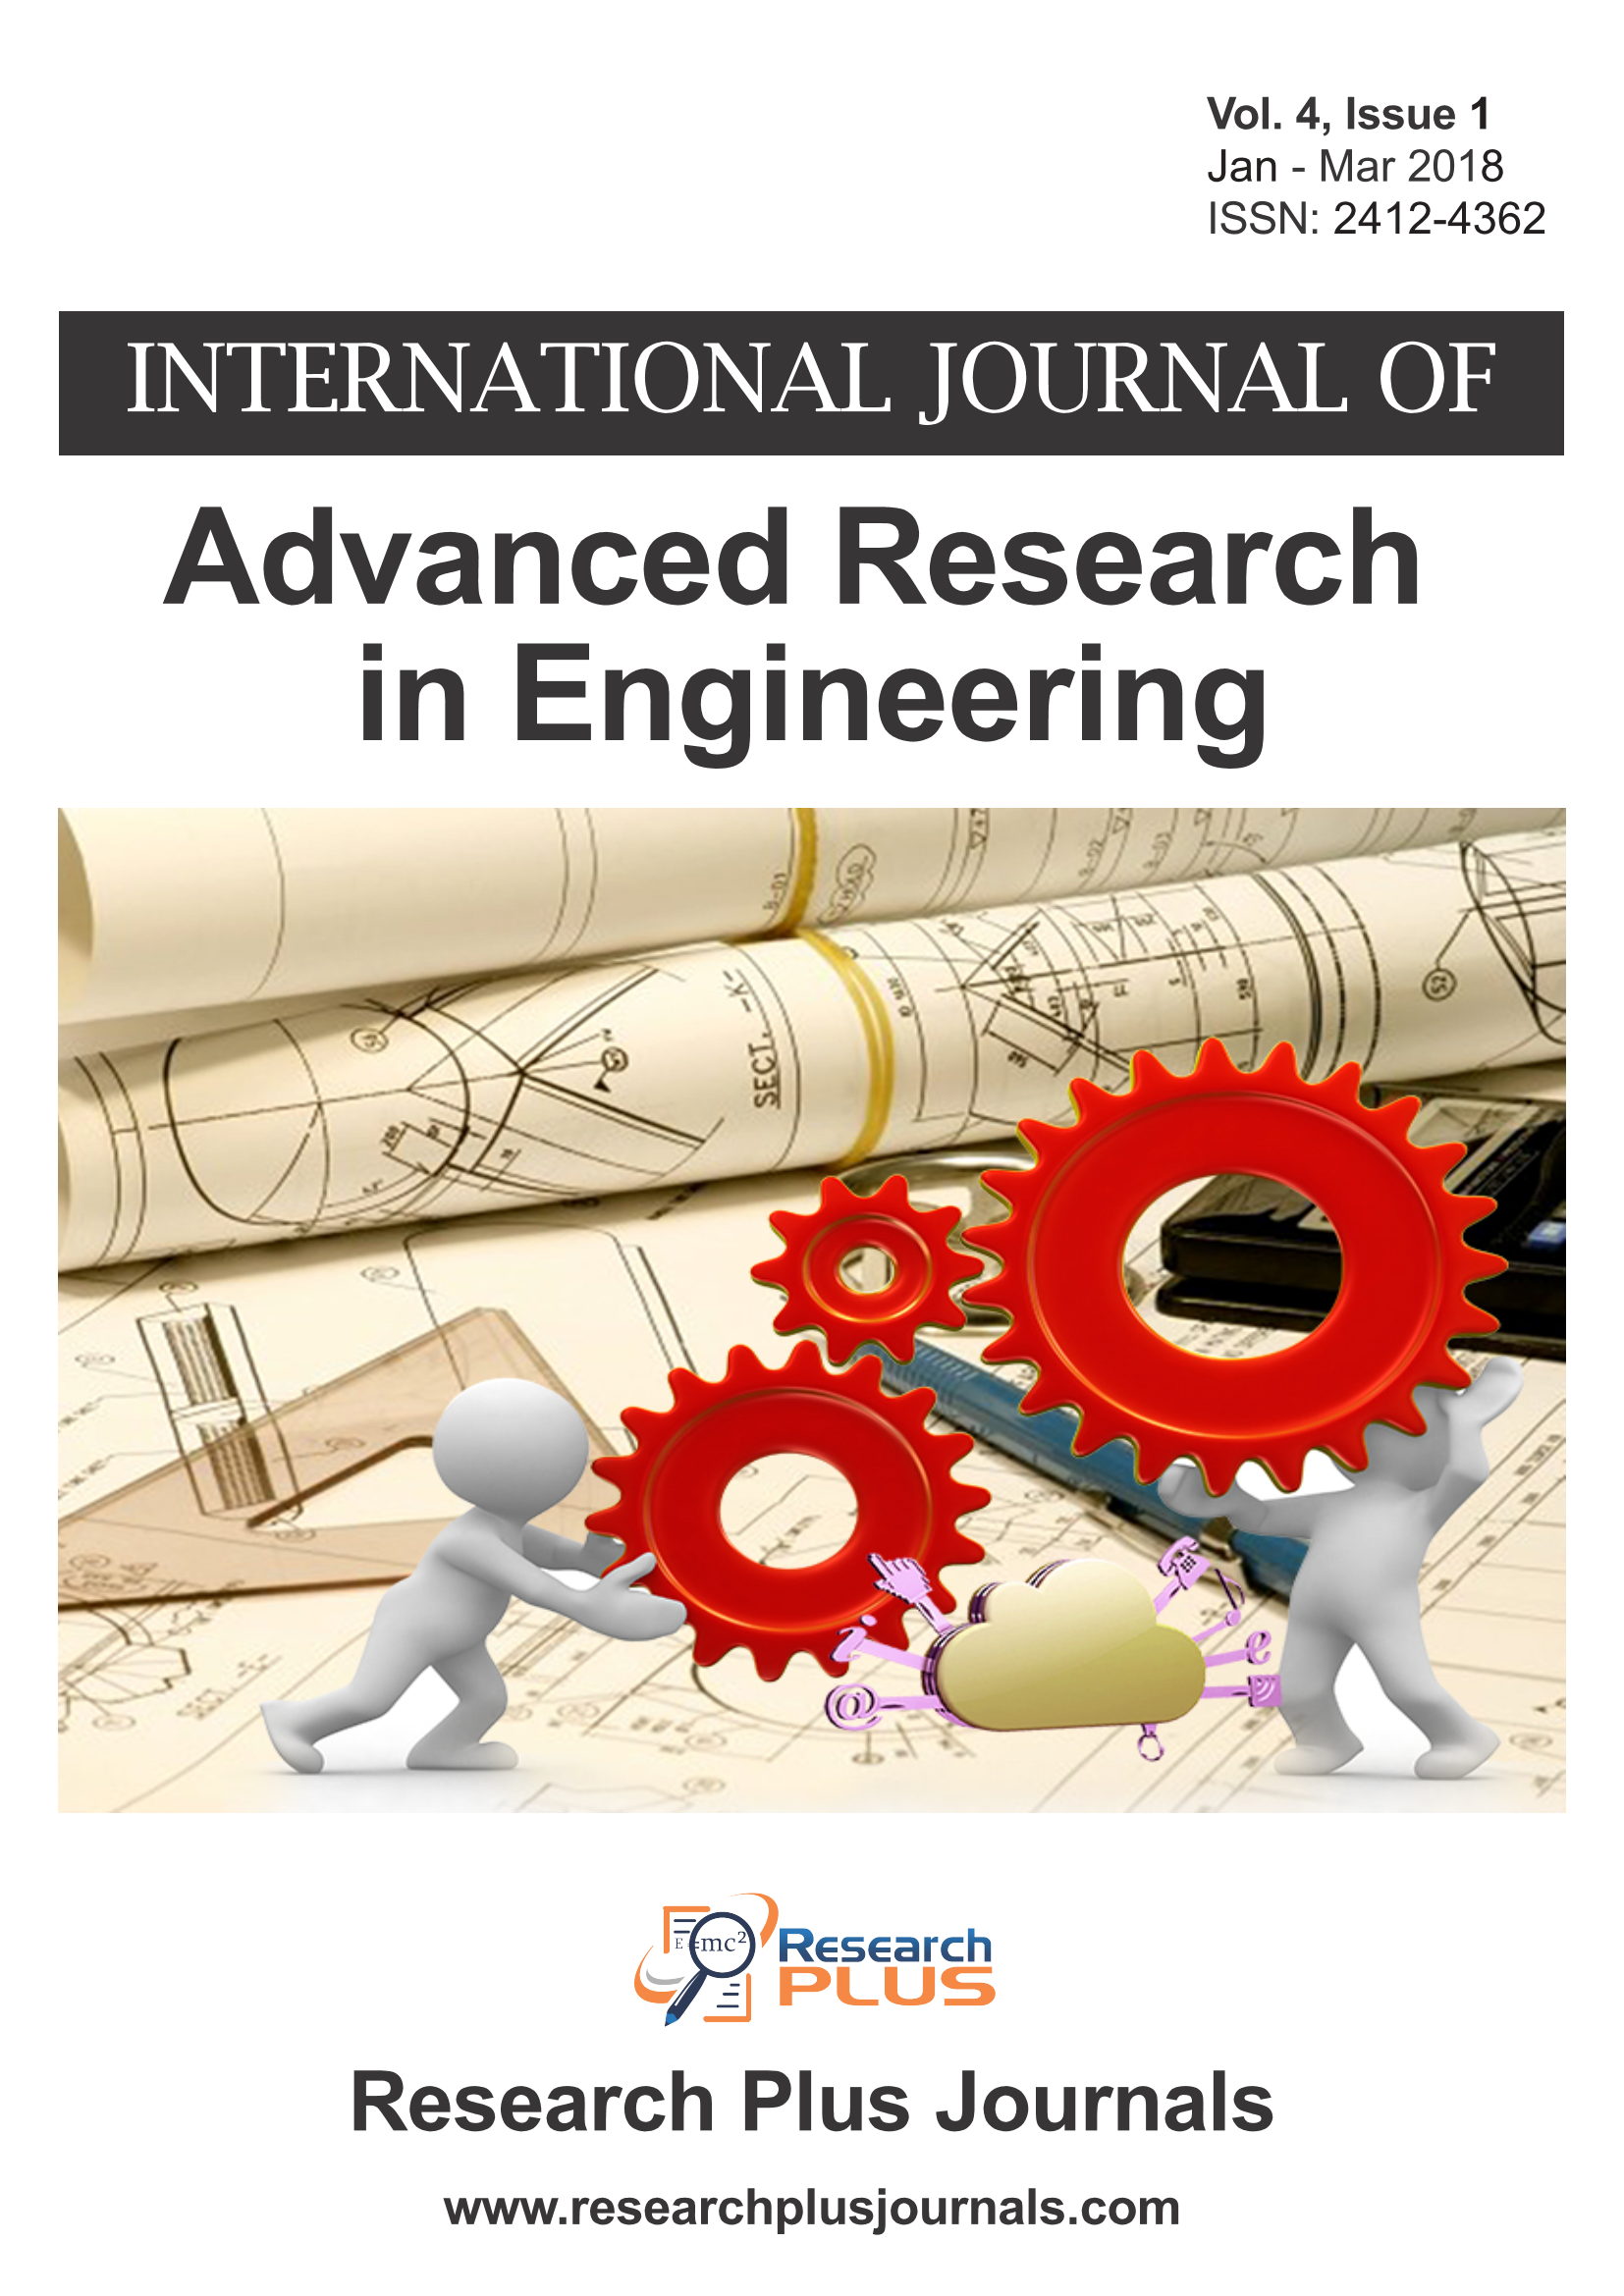 Volume 4, Issue 1, International Journal of Advanced Research in Engineering (IJARE)  (Online ISSN 2412-4362)